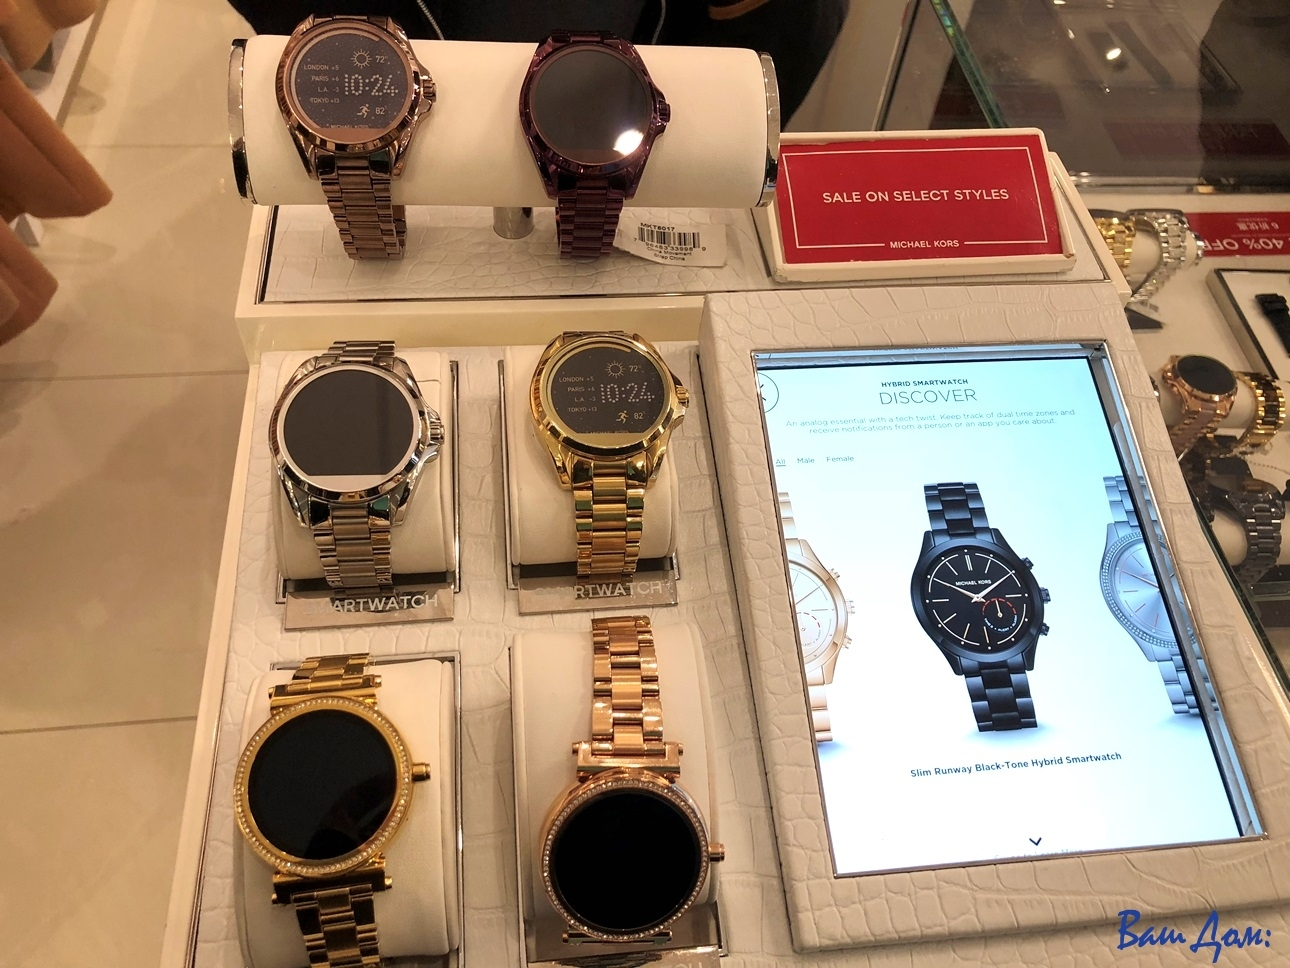 Get connected style with michael kors' customizable smartwatches, connecting style and technology.